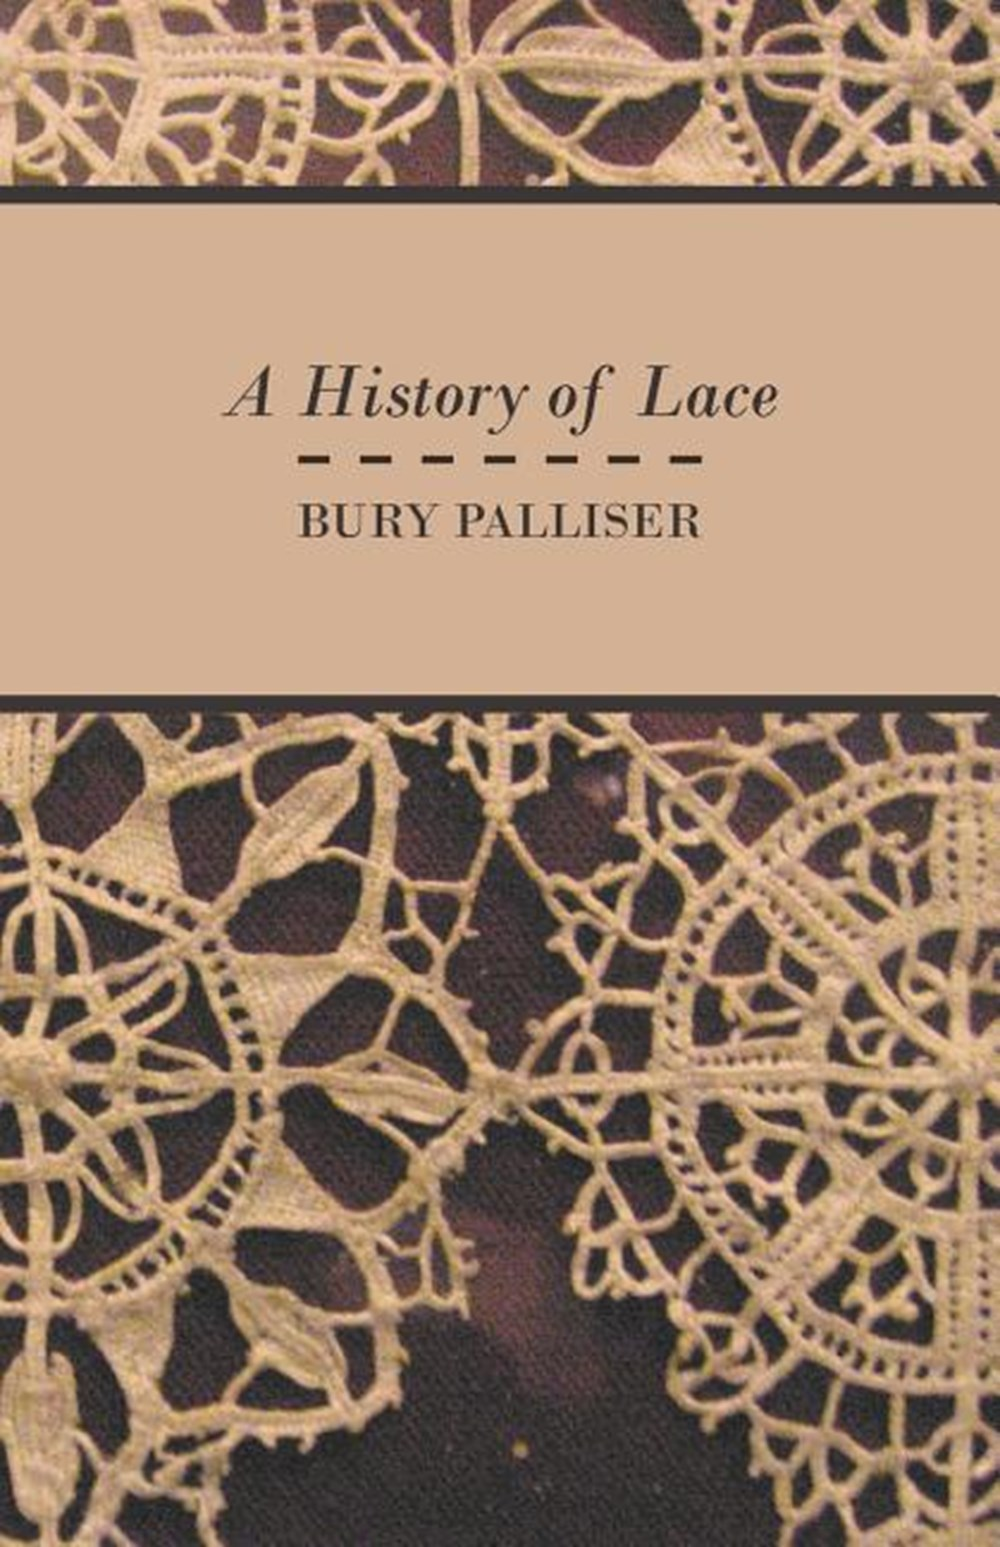 History of Lace